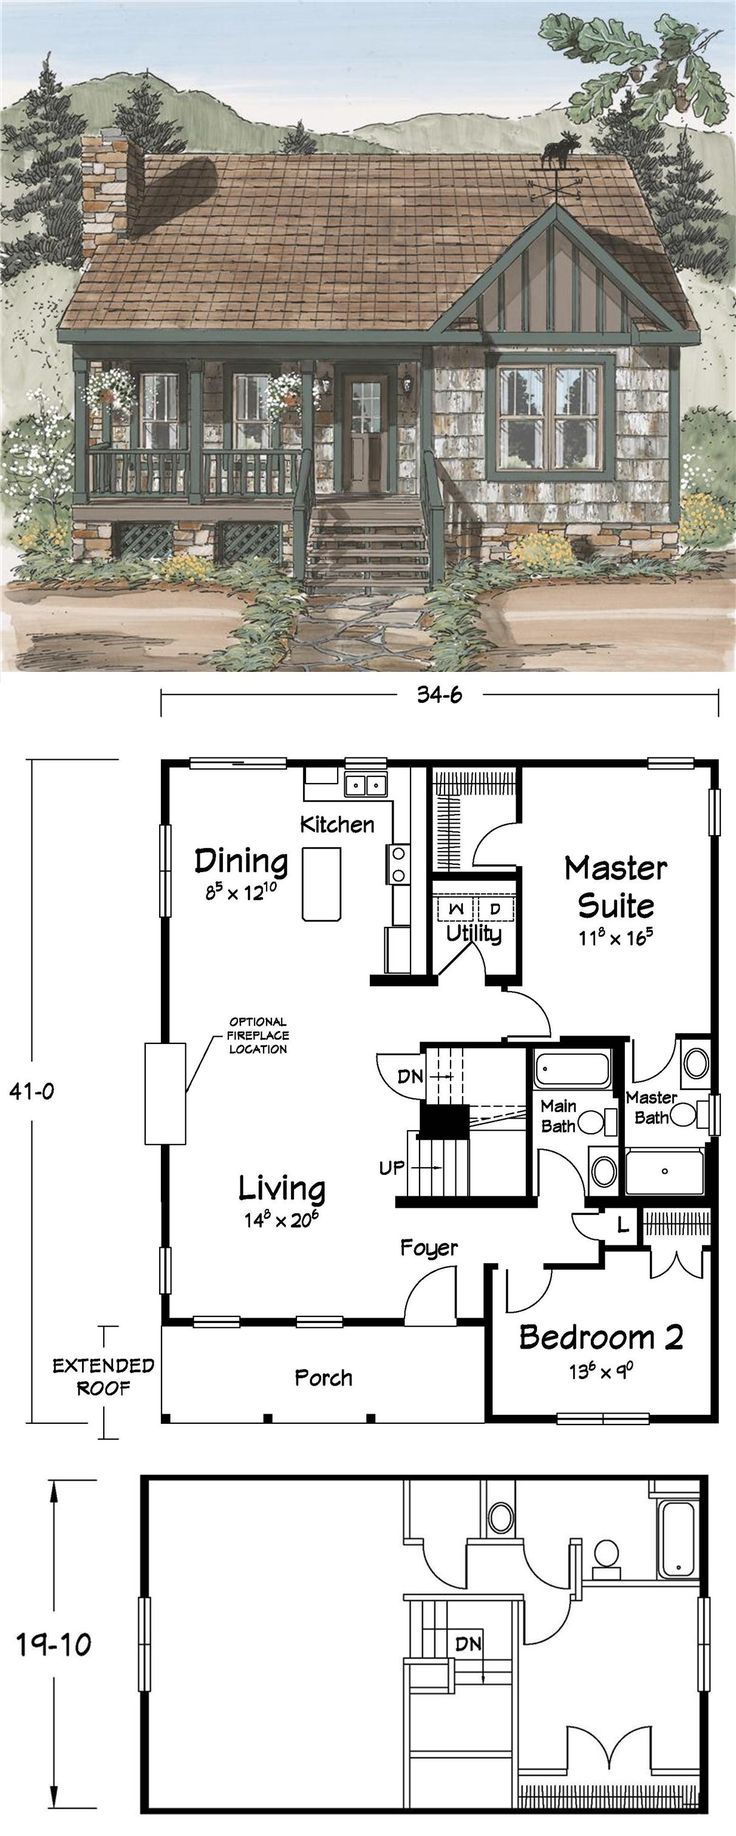 Cute floor plans tiny homes pinterest cabin small Small one room house plans